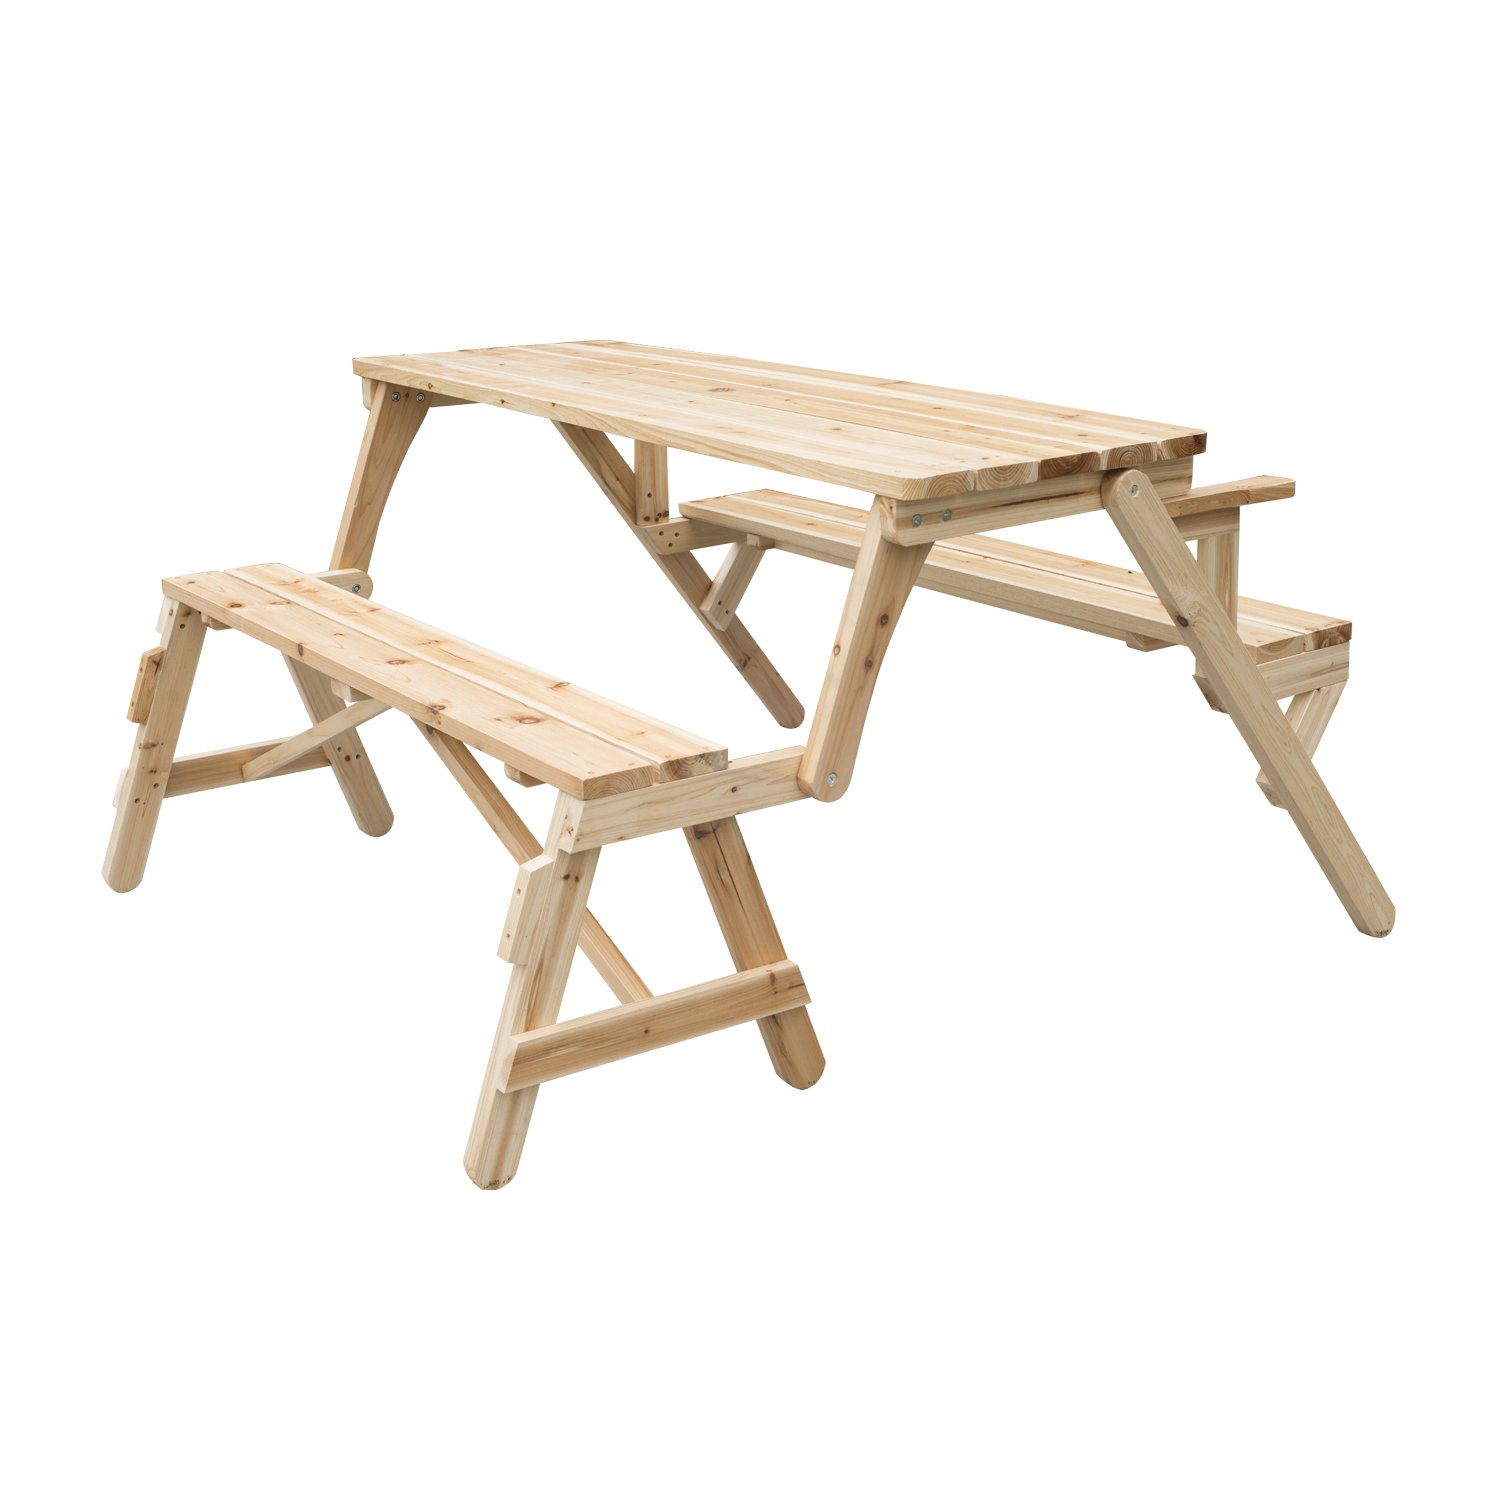 Outsunny 2 in 1 Convertible Picnic Table & Garden Bench by Outsunny